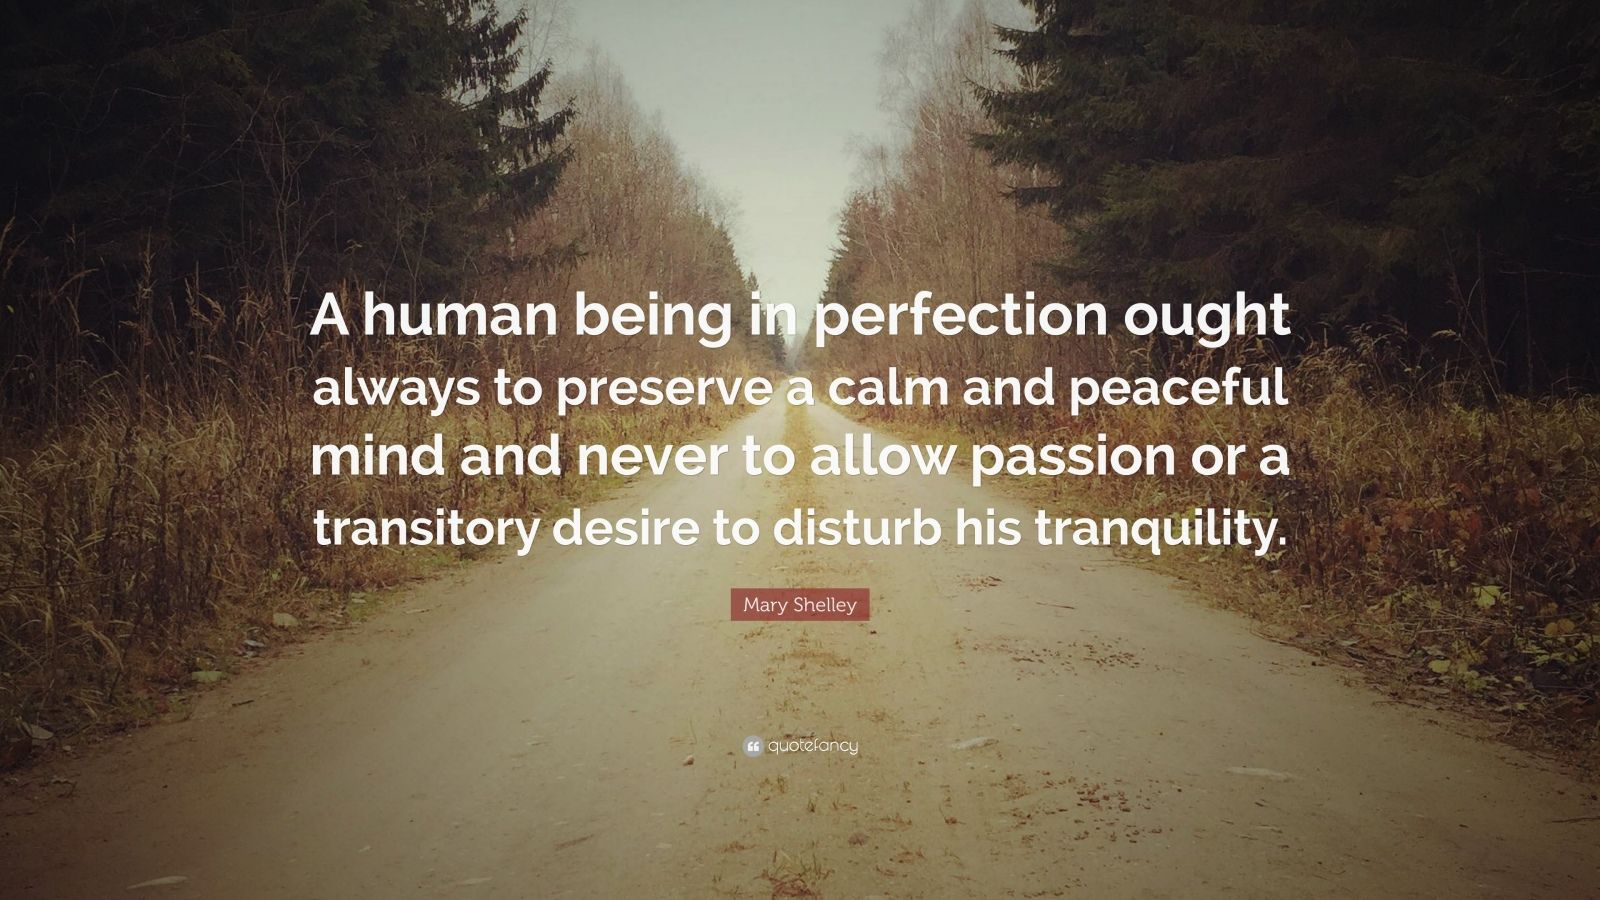 "Mary Shelley Quote: ""A human being in perfection ought always to preserve a calm and peaceful mind and never to allow passion or a transitory desire to disturb his tranquility."""